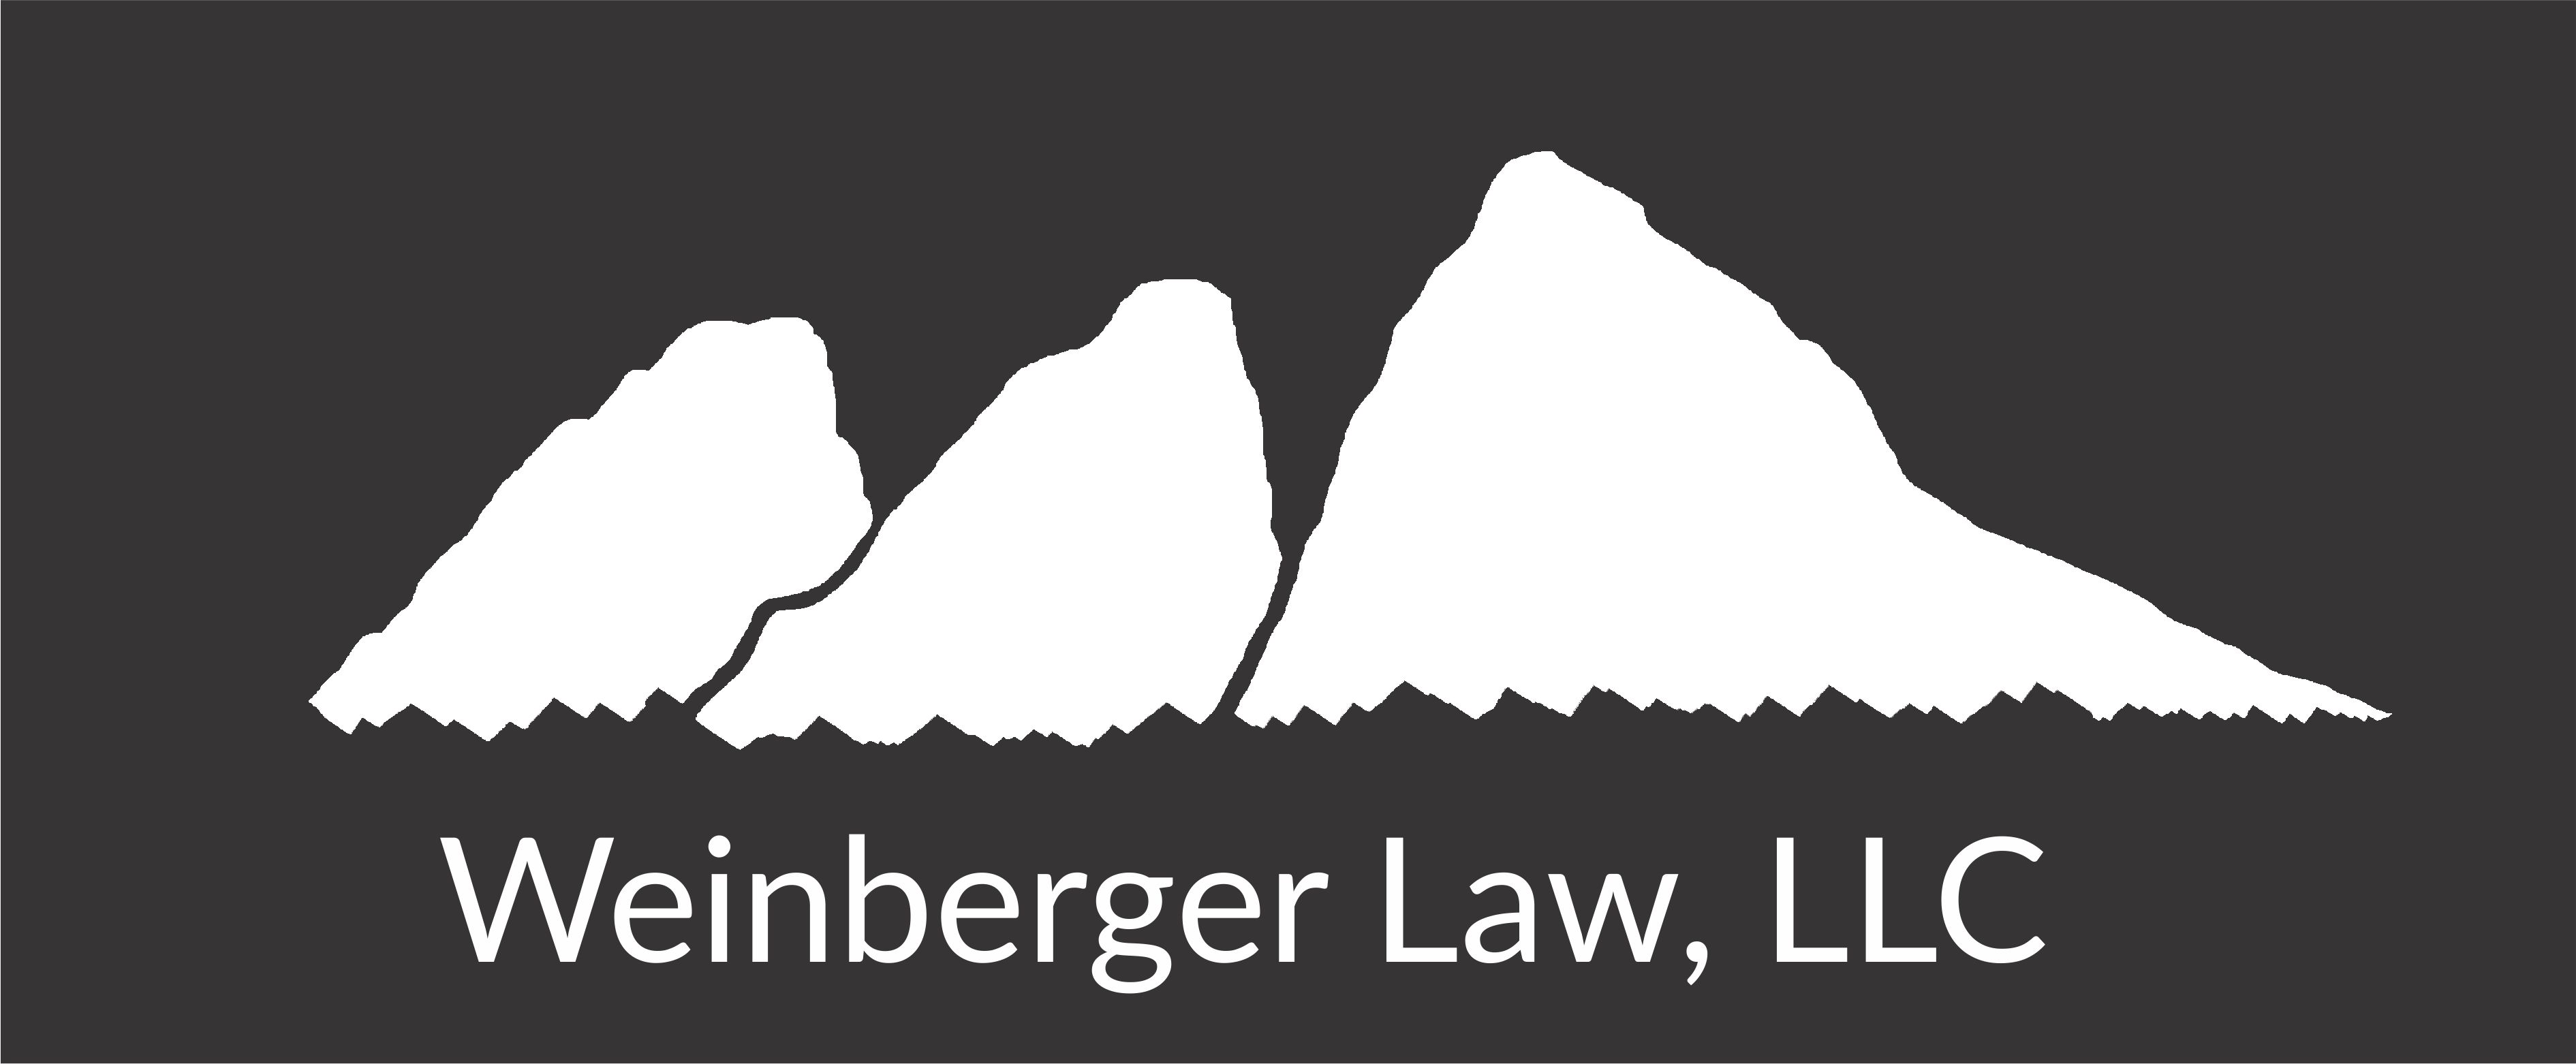 Weinberger Law, LLC Logo